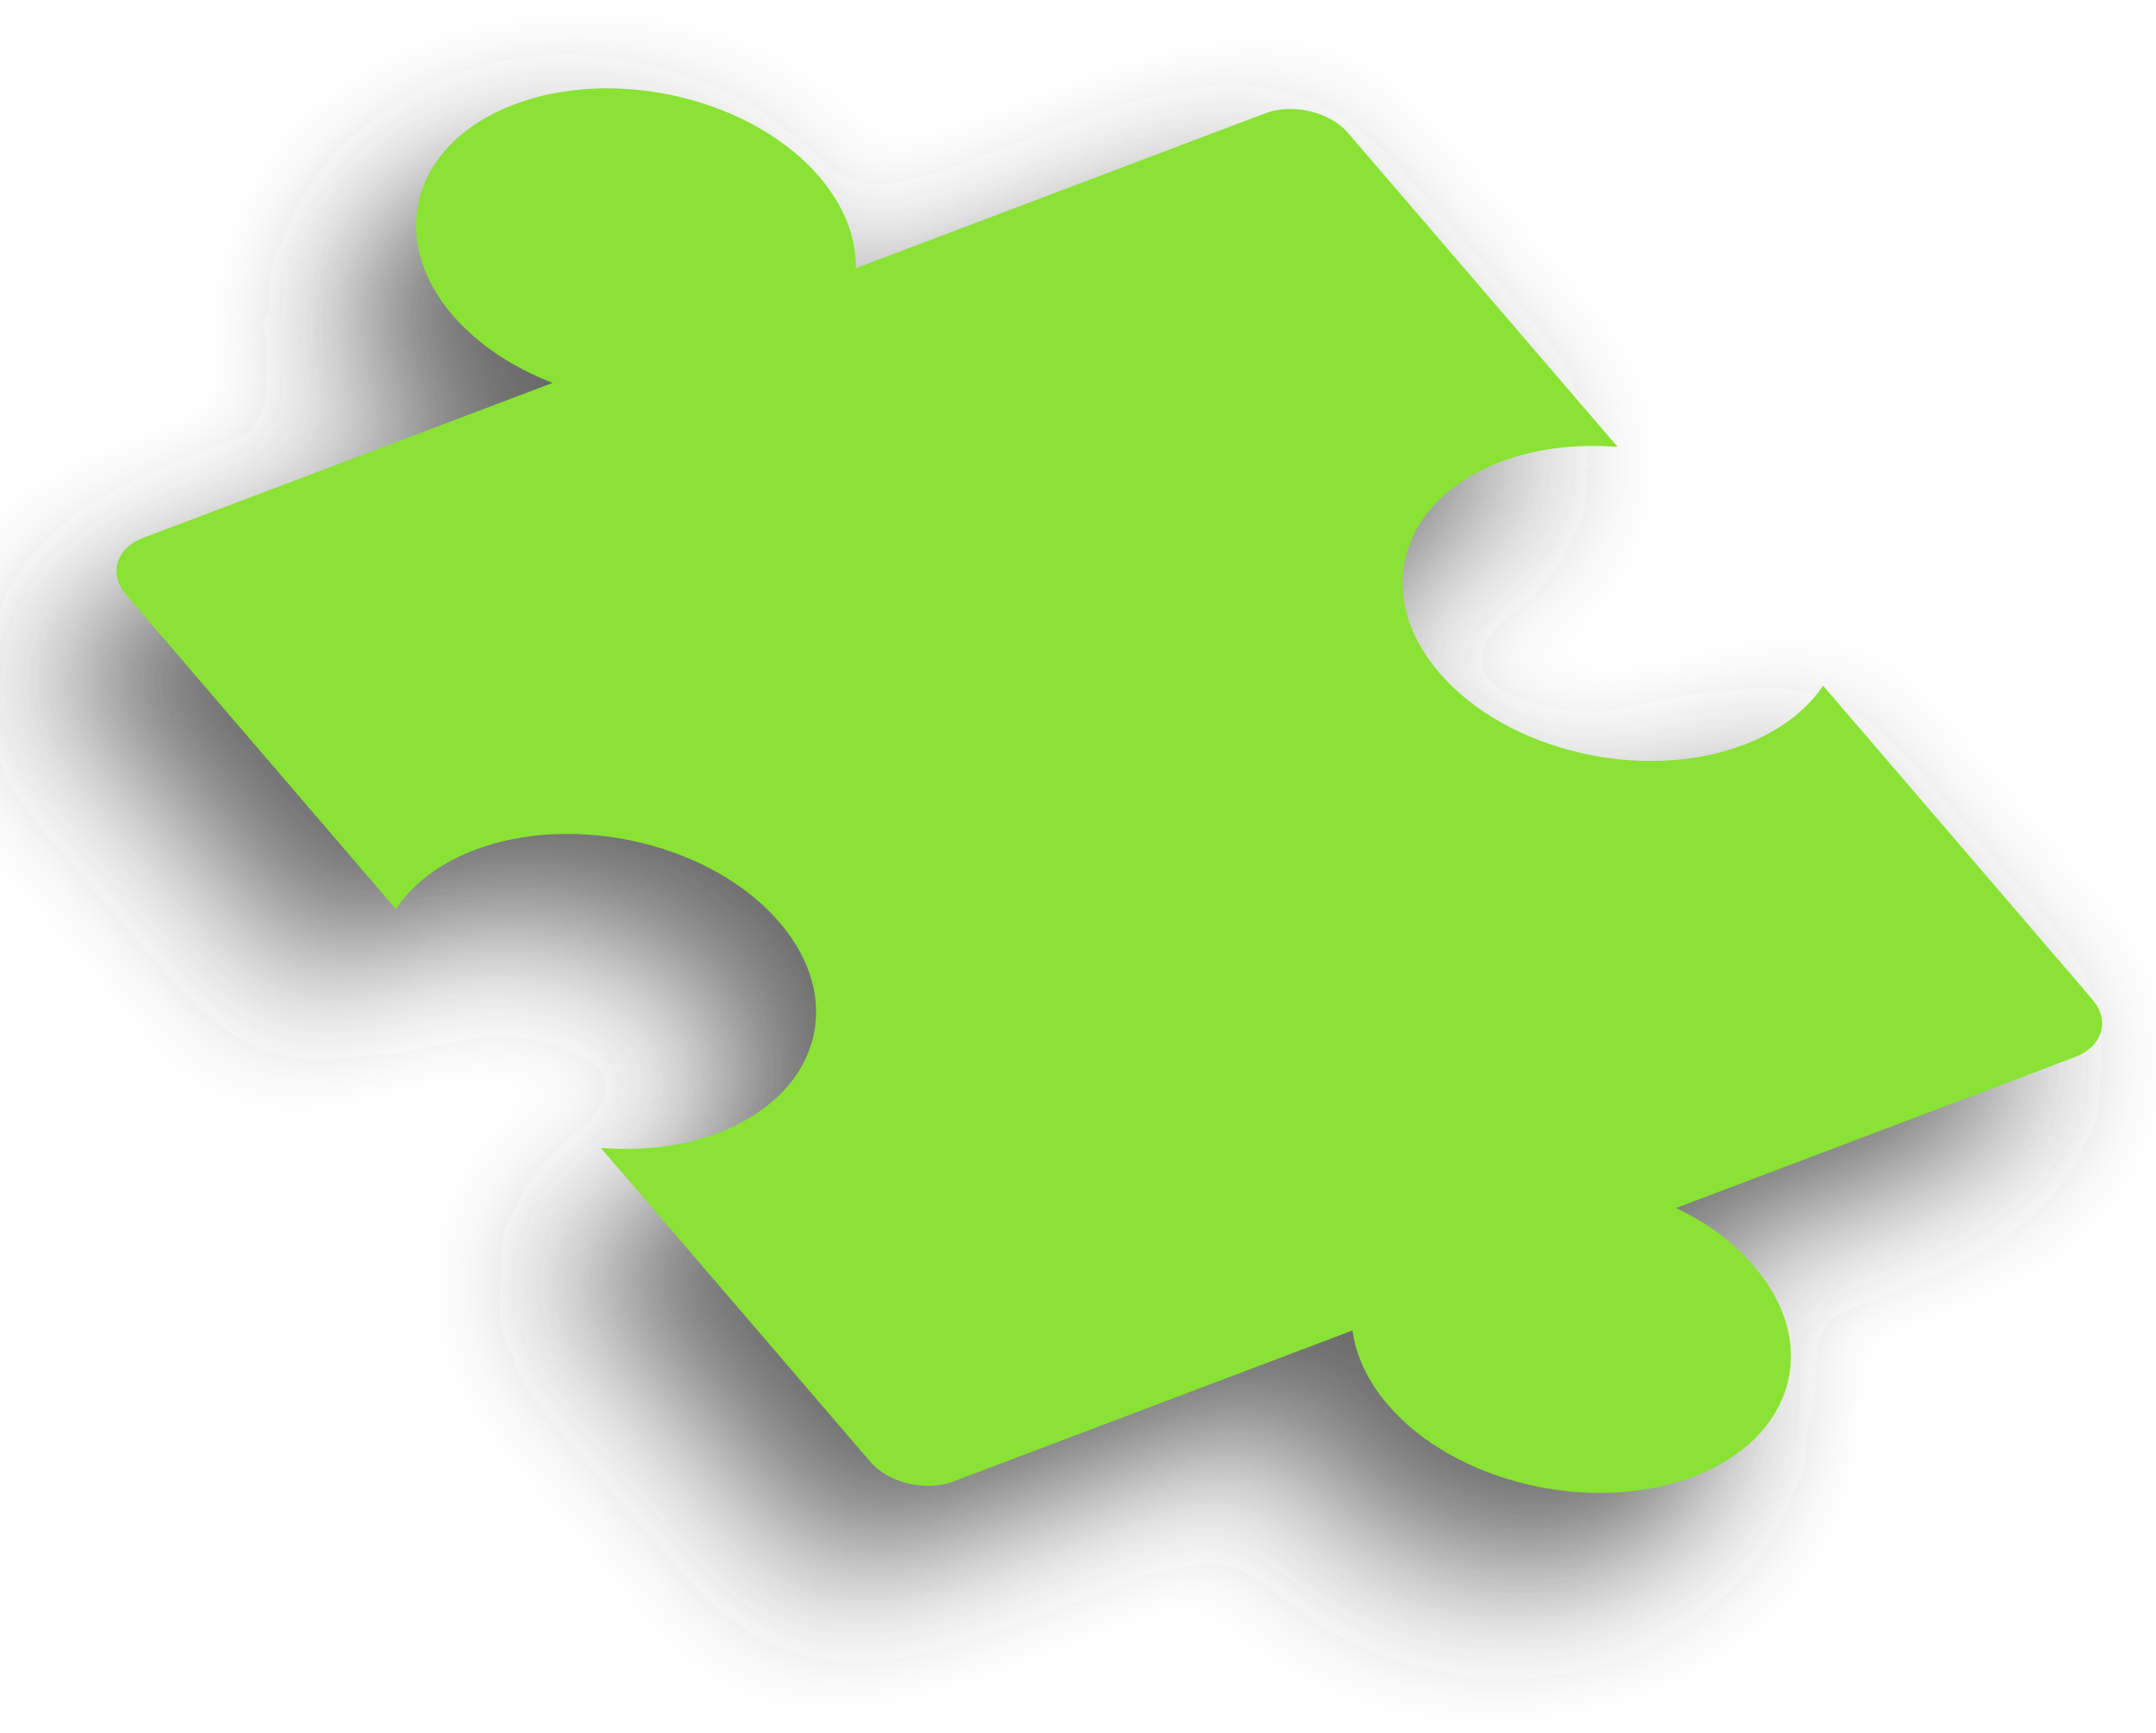 Piece green. Puzzle clipart business